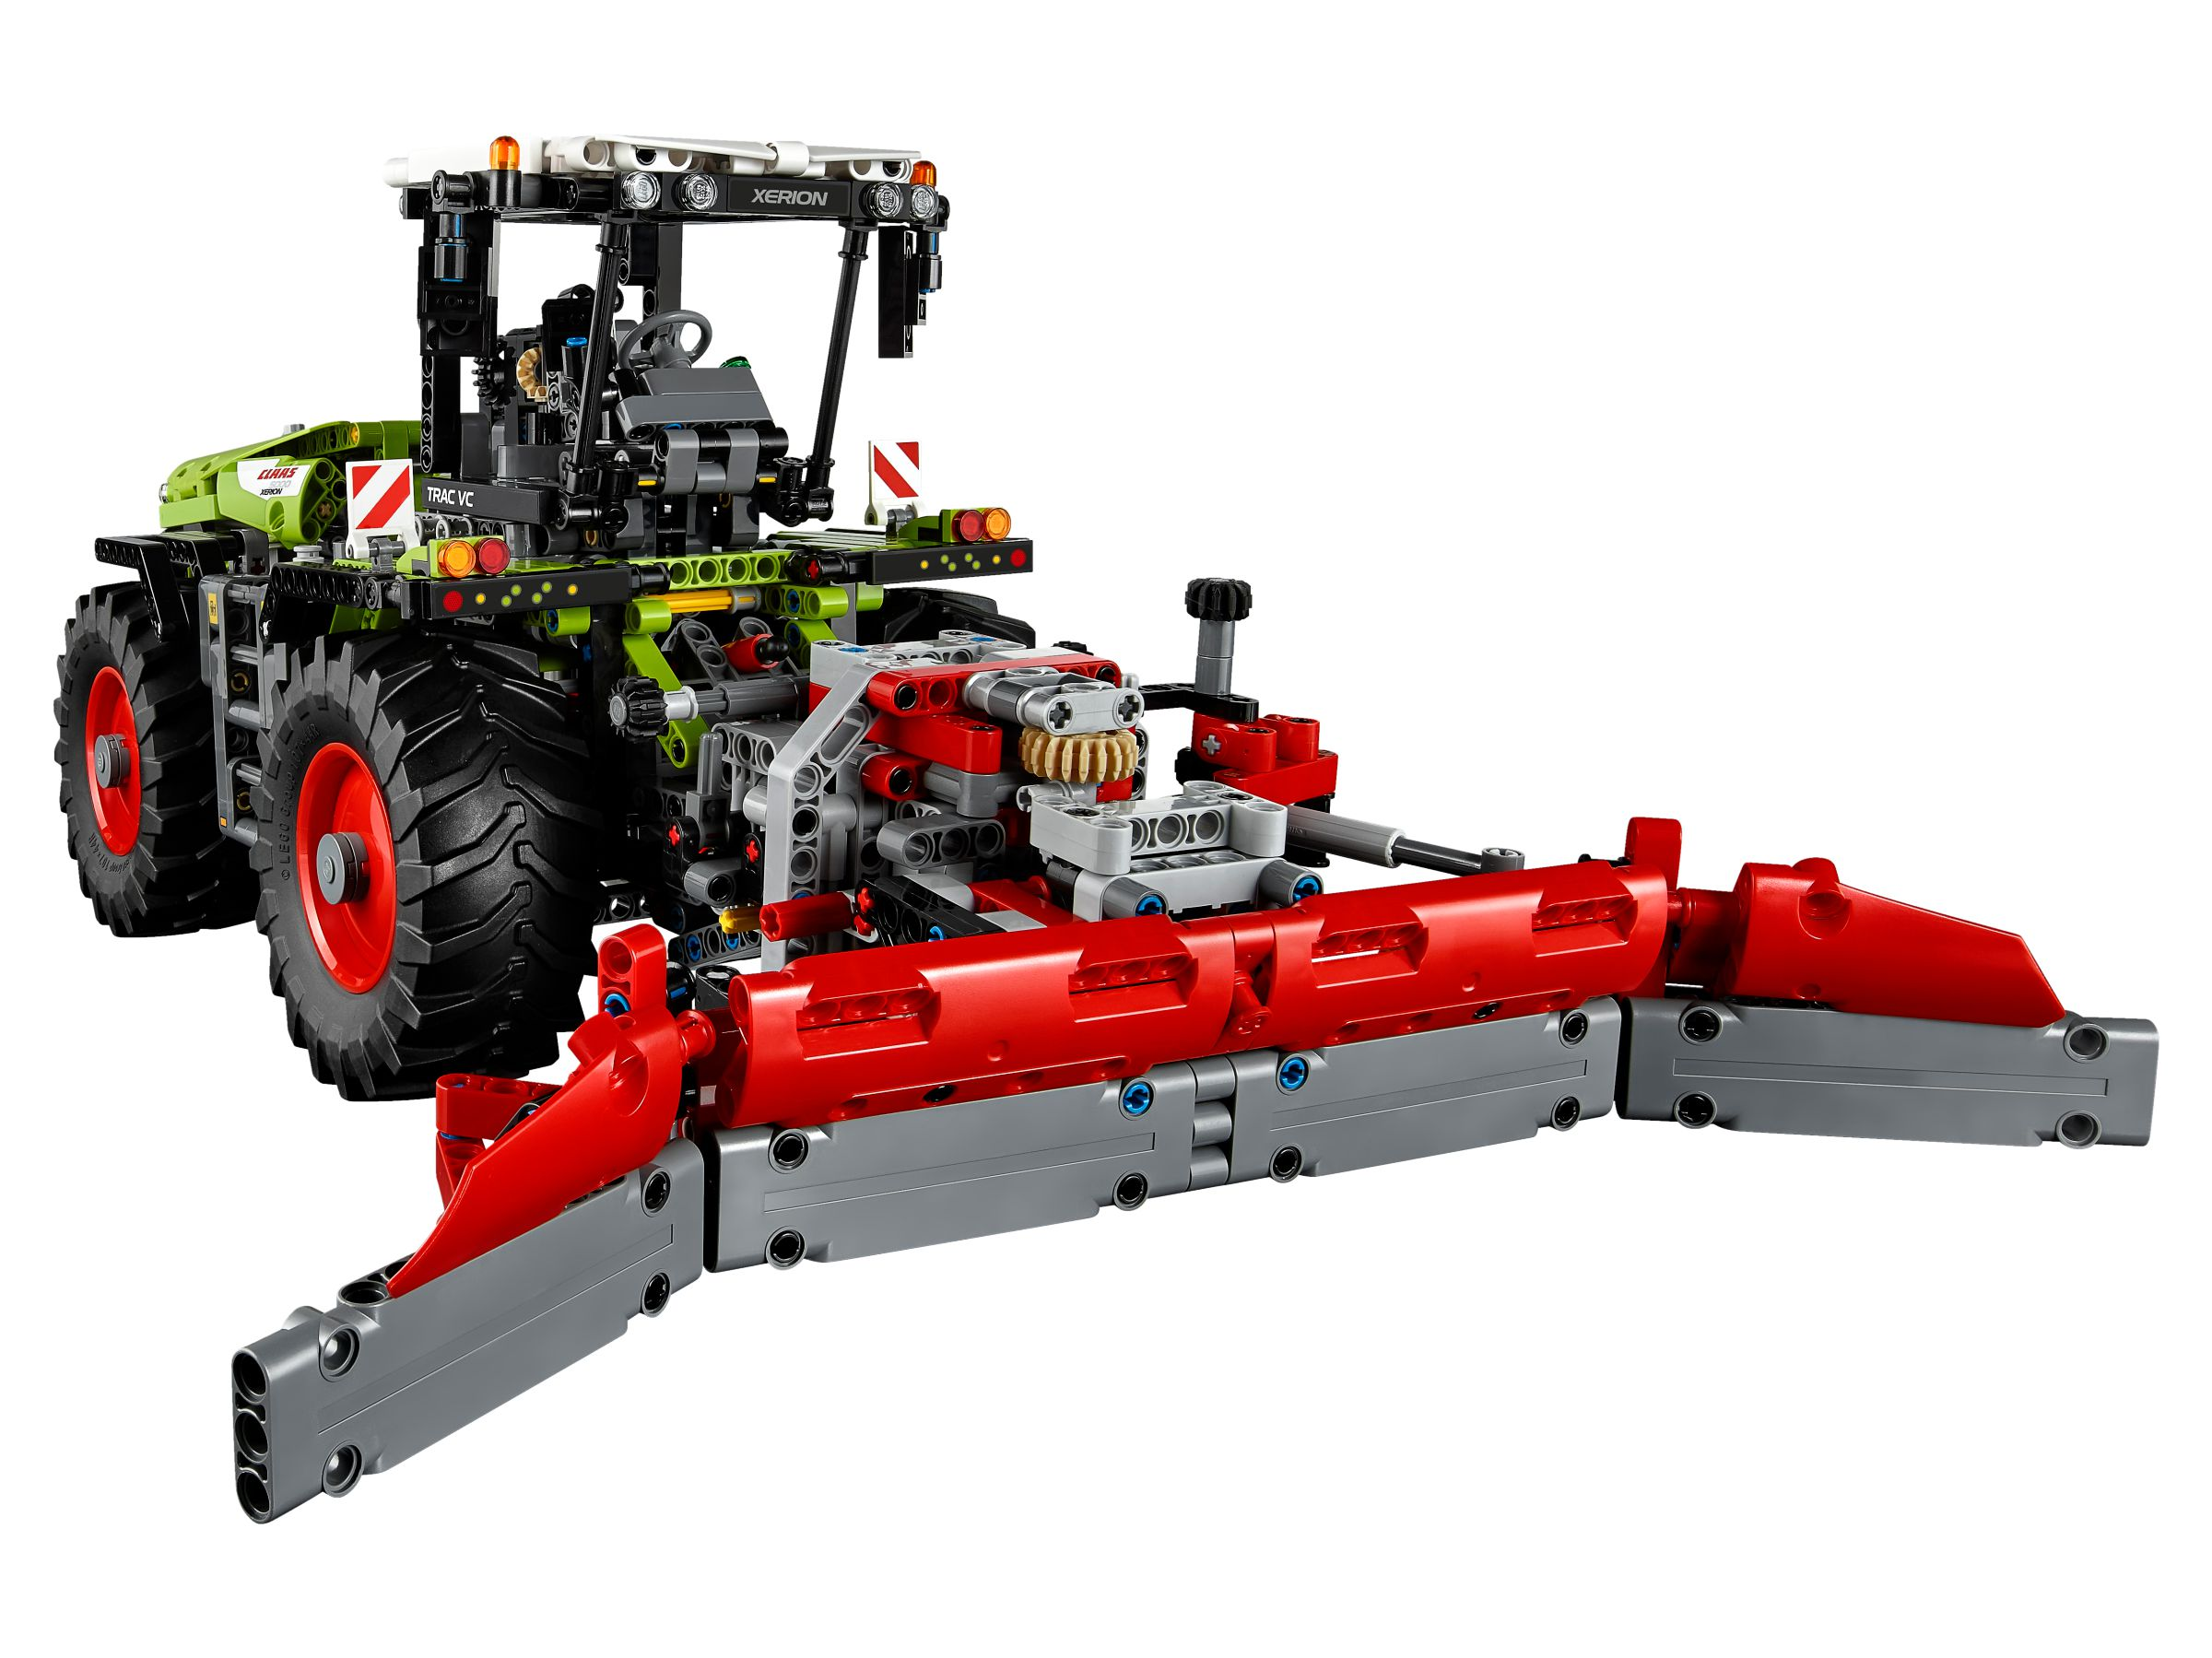 lego 42054 claas xerion 5000 trac vc technic 2016 claas xerion 5000 trac vc brickmerge. Black Bedroom Furniture Sets. Home Design Ideas